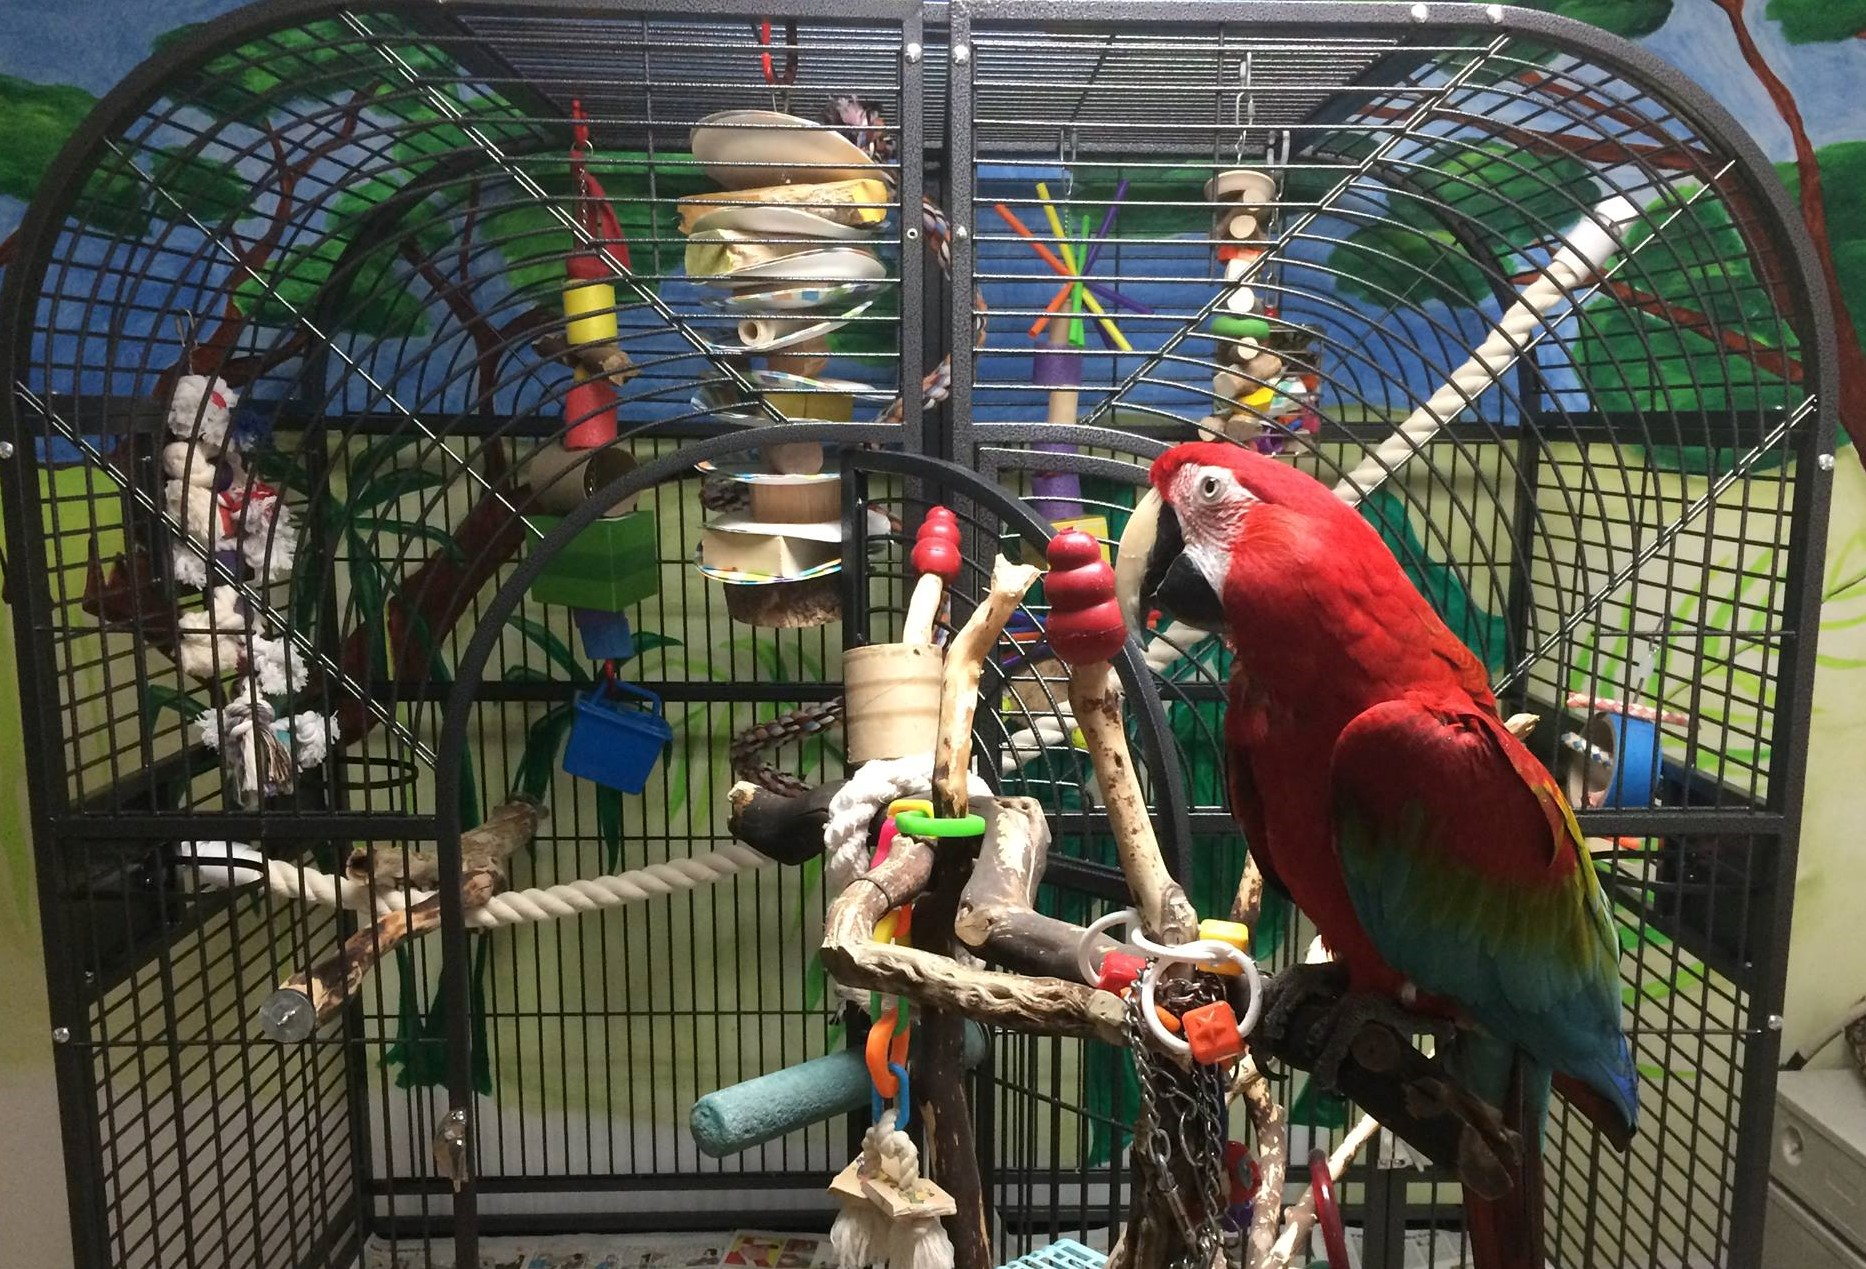 A Green-Winged Macaw on a tree stand in front of a large parrot cage. Apollo was returned to MAARS when his caretaker became ill.